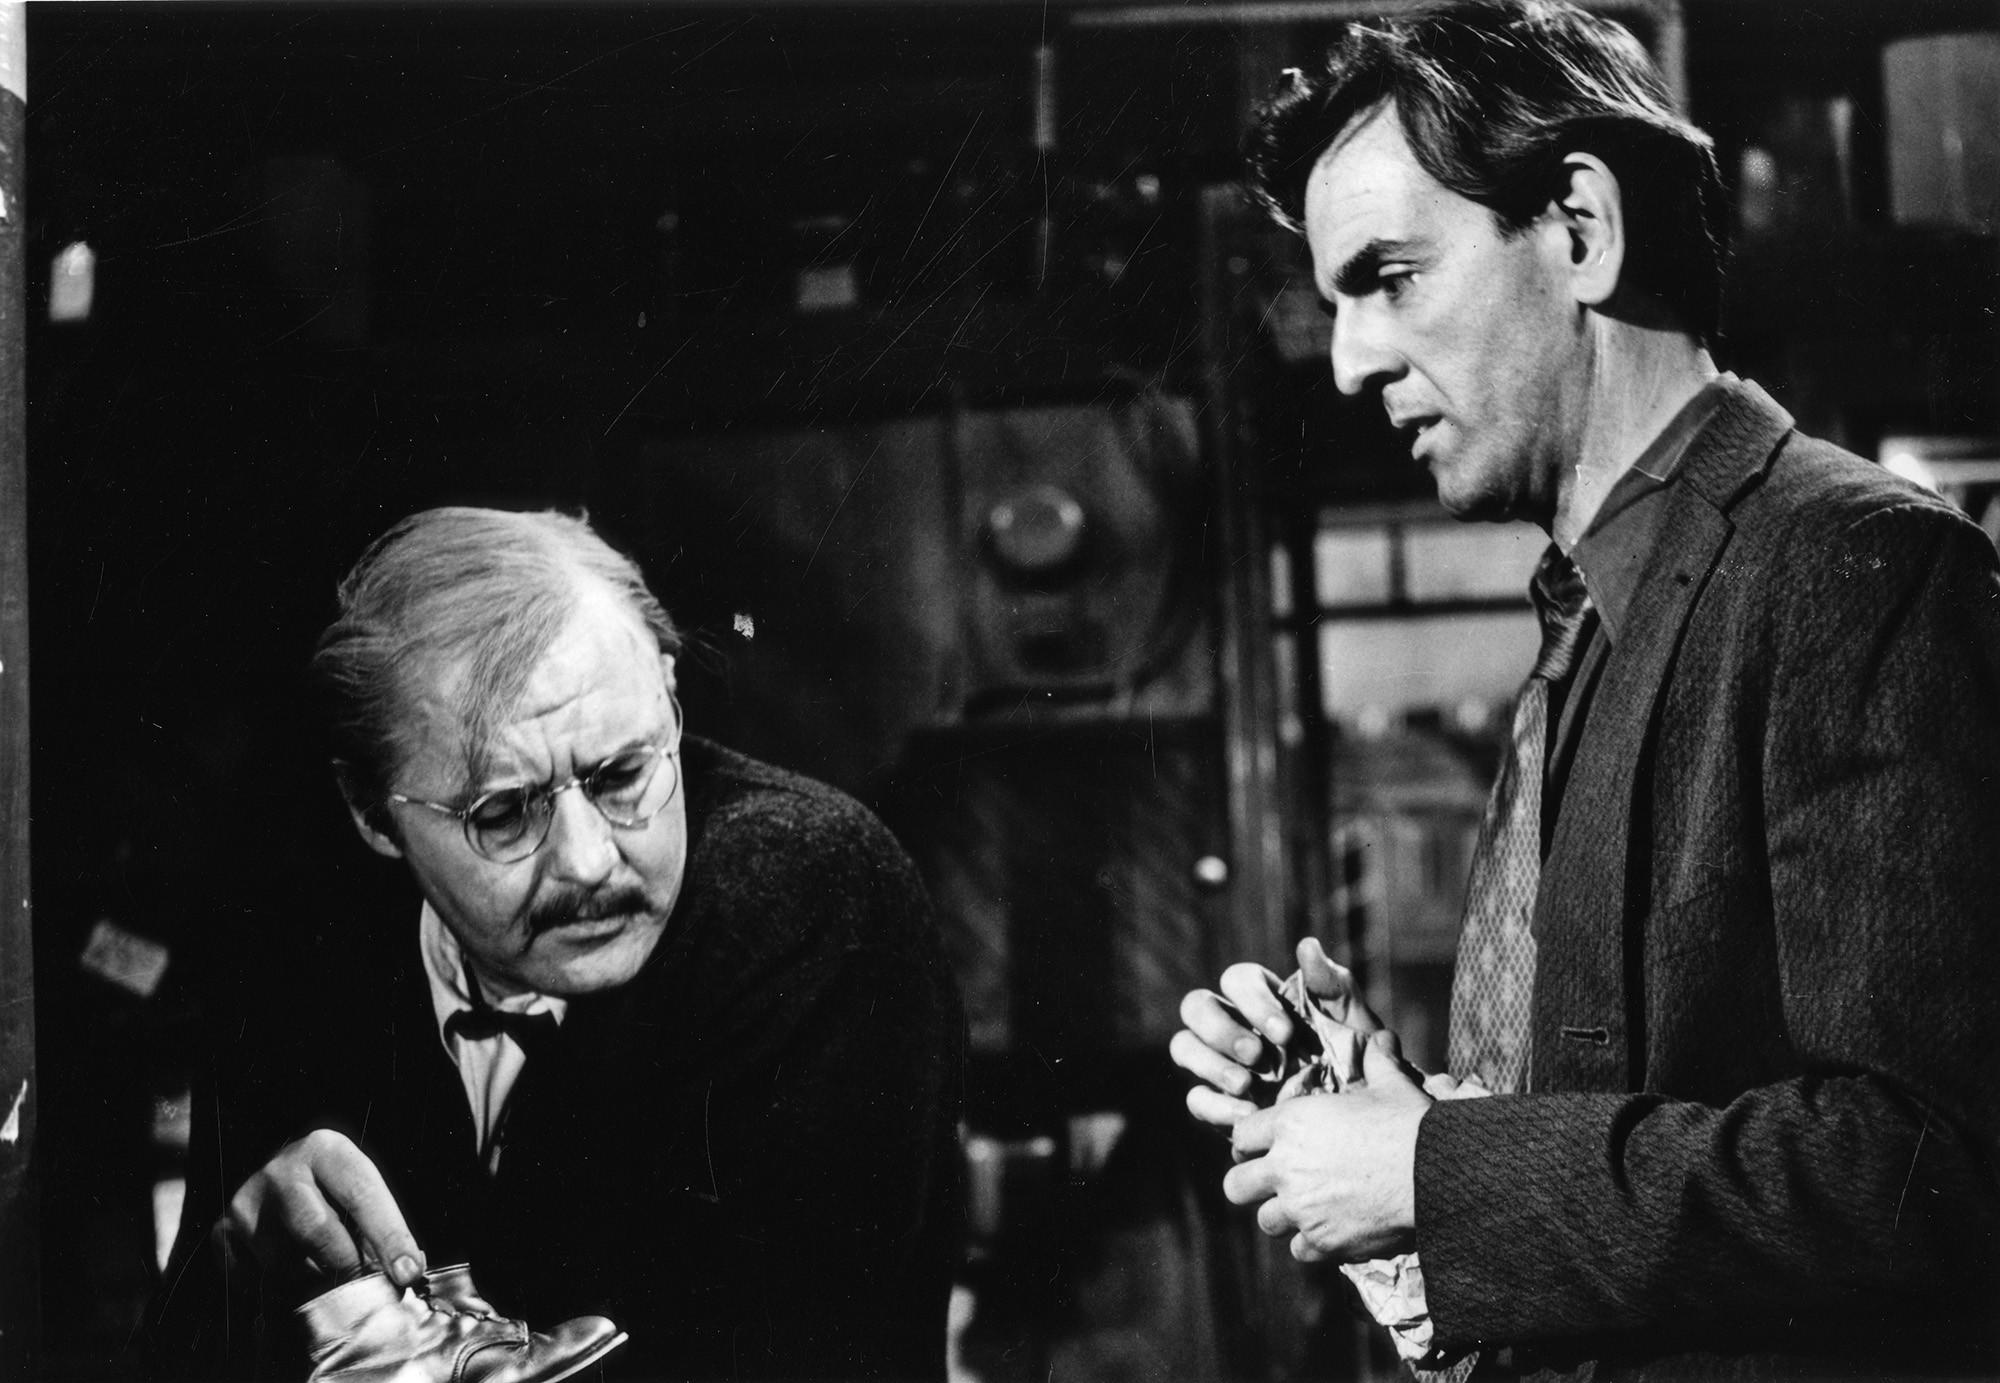 A scene from Sidney Lumet's classic The Pawnbroker, starring Rod Steiger.